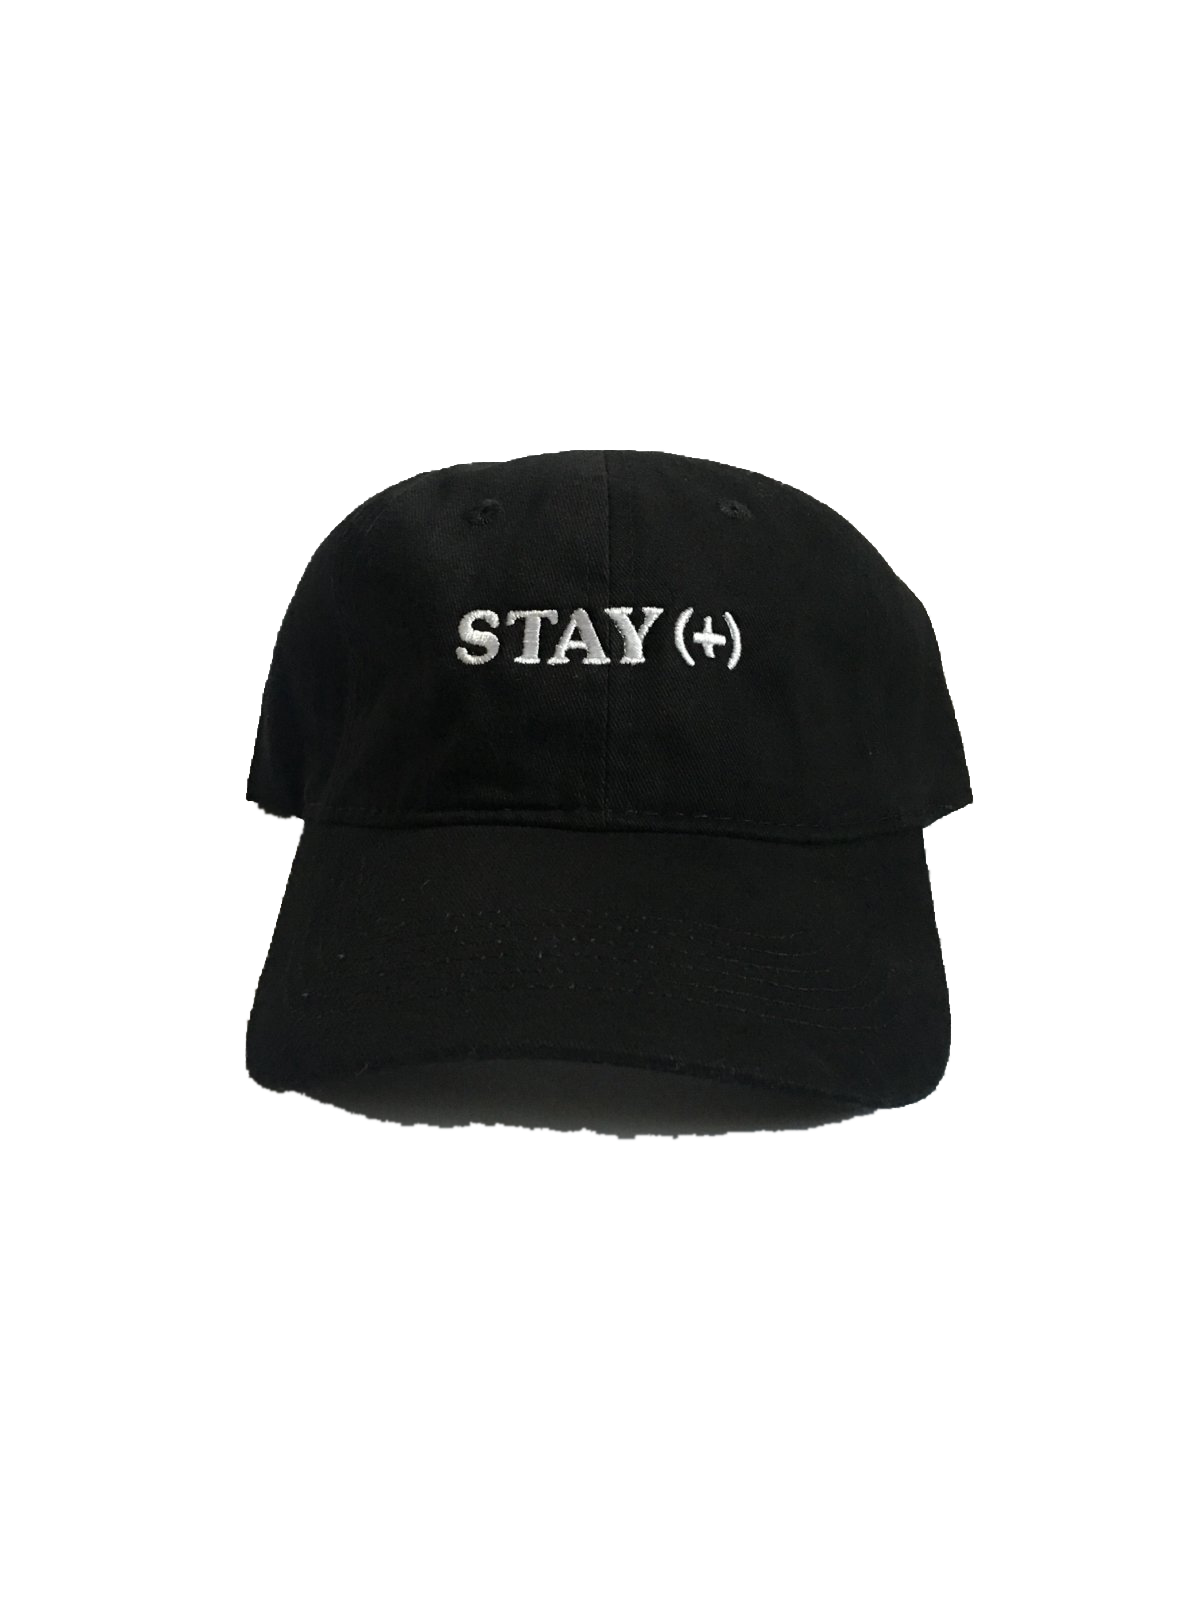 Image of Stay (+) cap